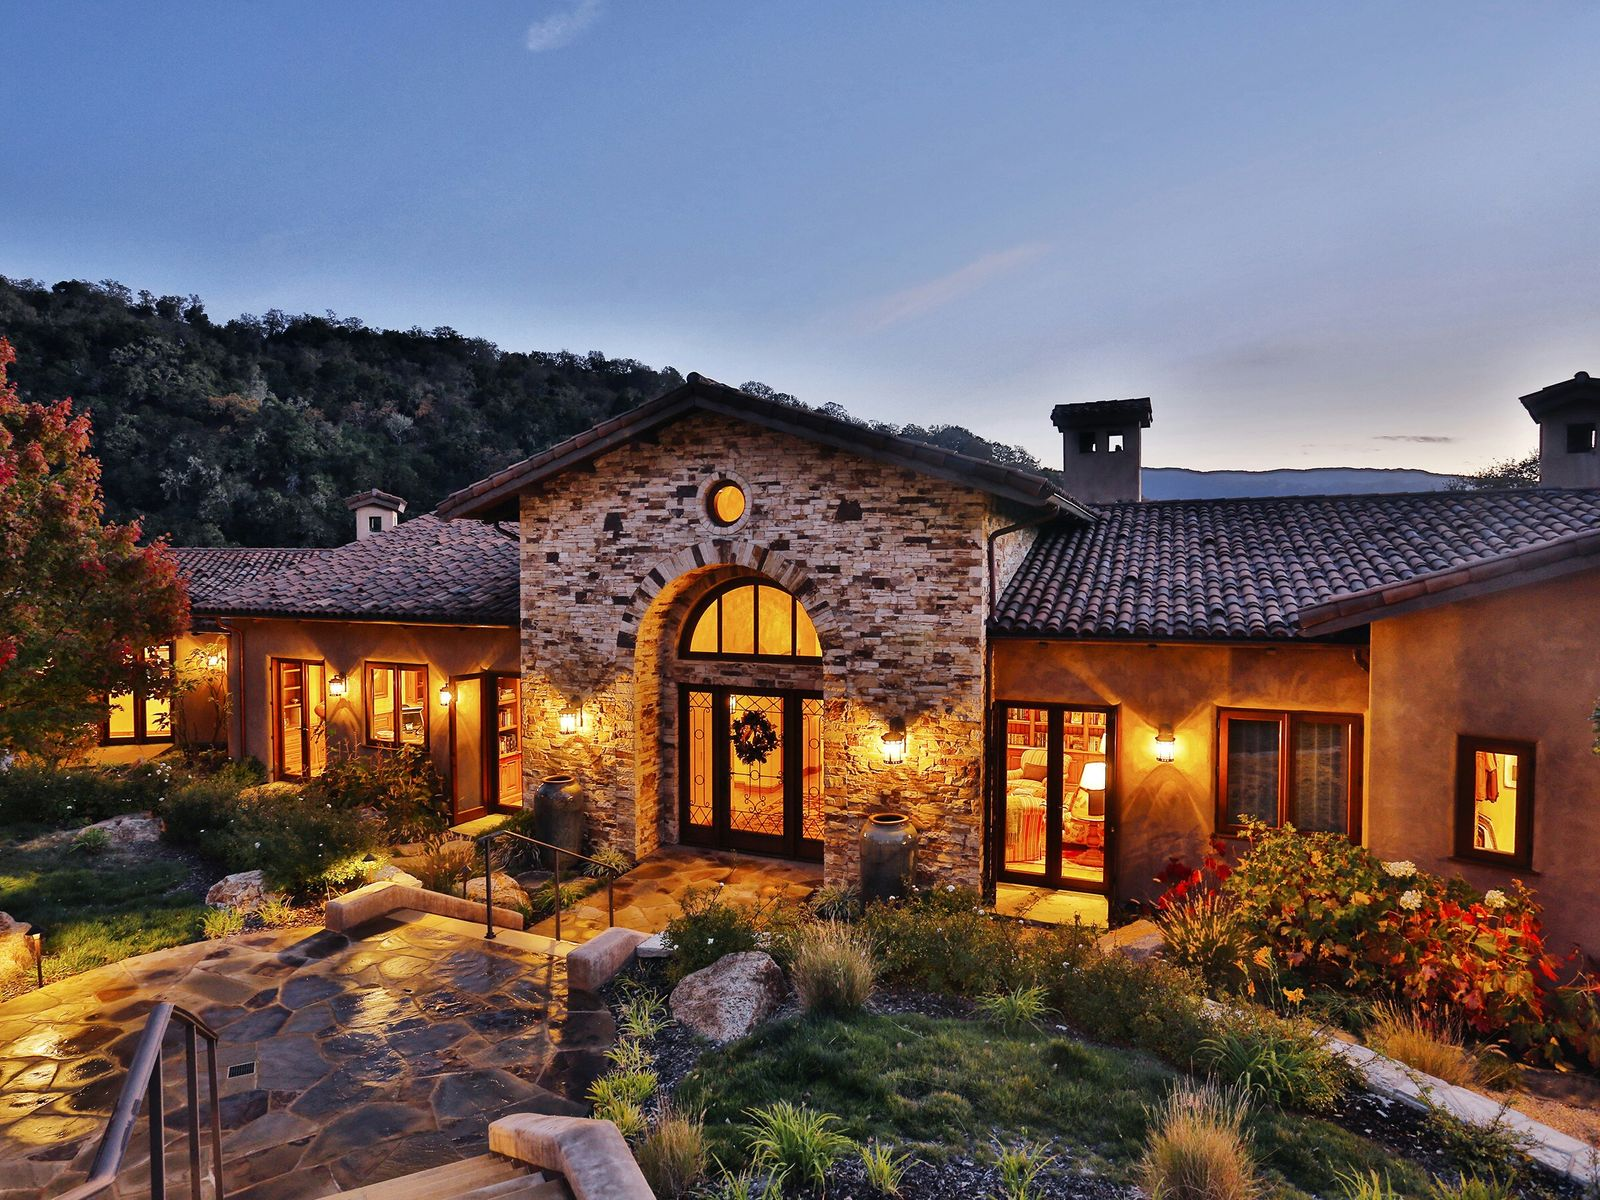 50-Acre Country Estate, Carmel Valley CA Single Family Home - Monterey Real Estate